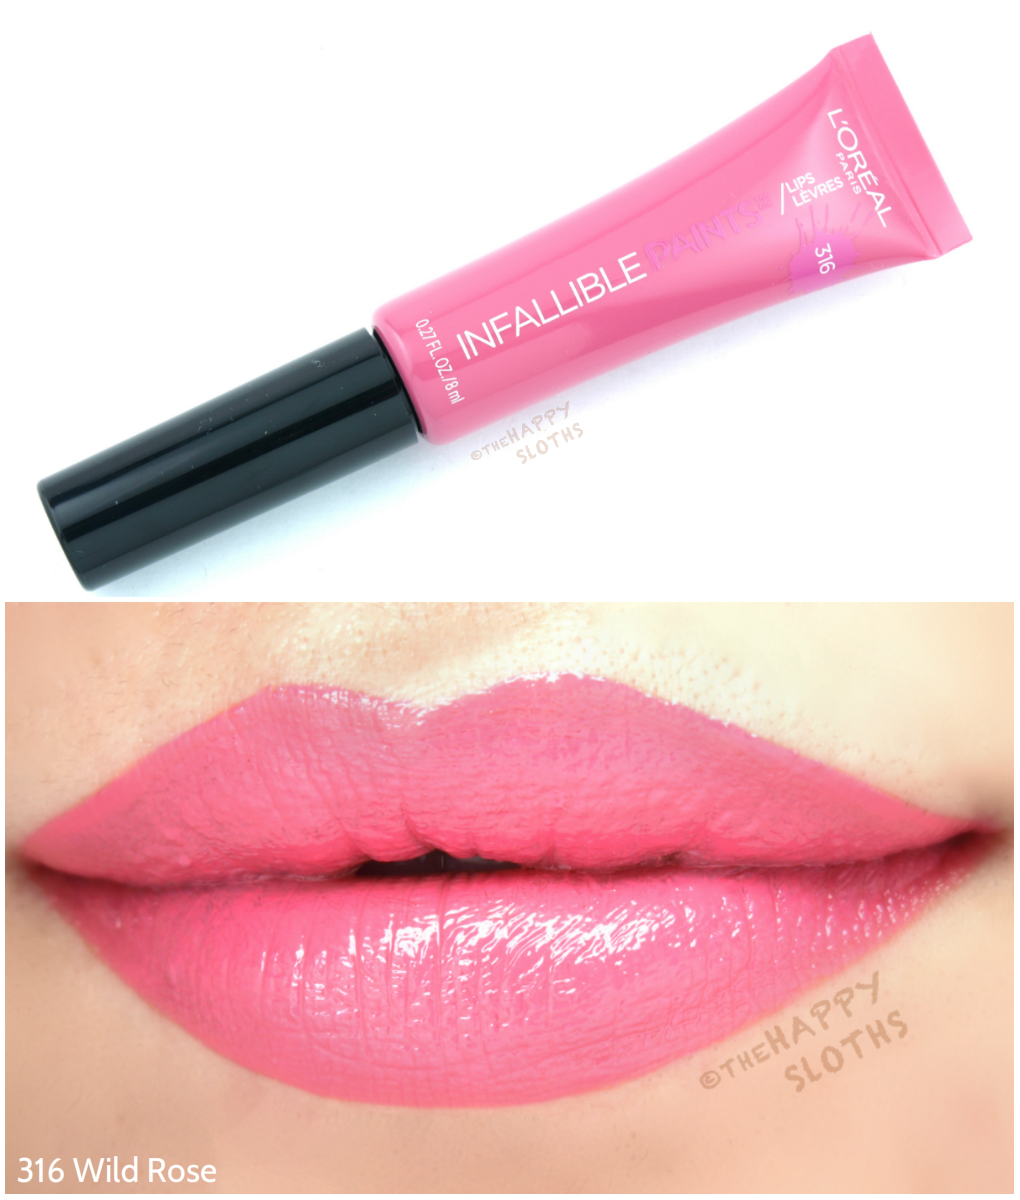 L'Oreal Infallible Lip Paints 316 Wild Rose